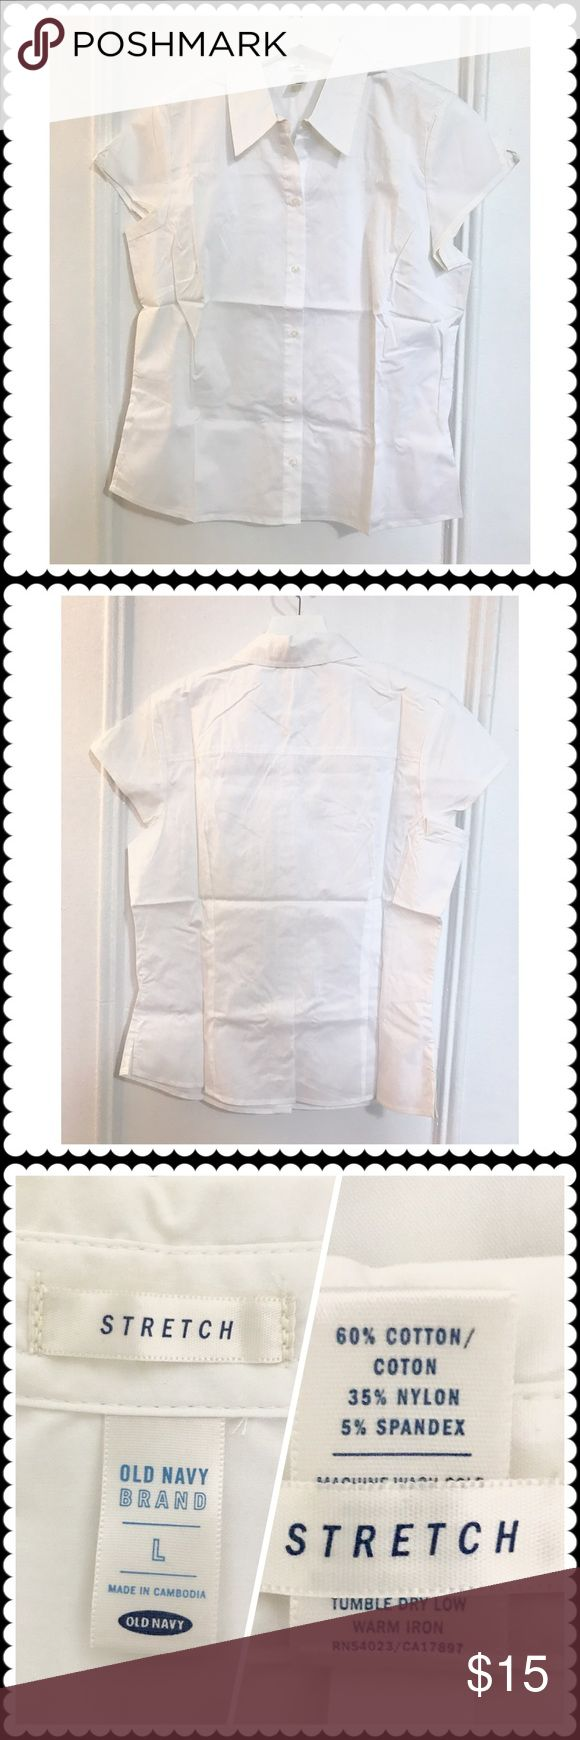 Old navy white shirt Old navy white shirt cotton/nylon/spandex cap sleeve shirt. Size L. Just took out of a package hence wrinkled. This is the best summer white everyday shirt I ran across and bought tons of them. I wore them a lot but still have several left. Nobody makes this kind of simple easy care shirt with good prices any more. Size L. It is new in package but didn't come with tags Old Navy Tops